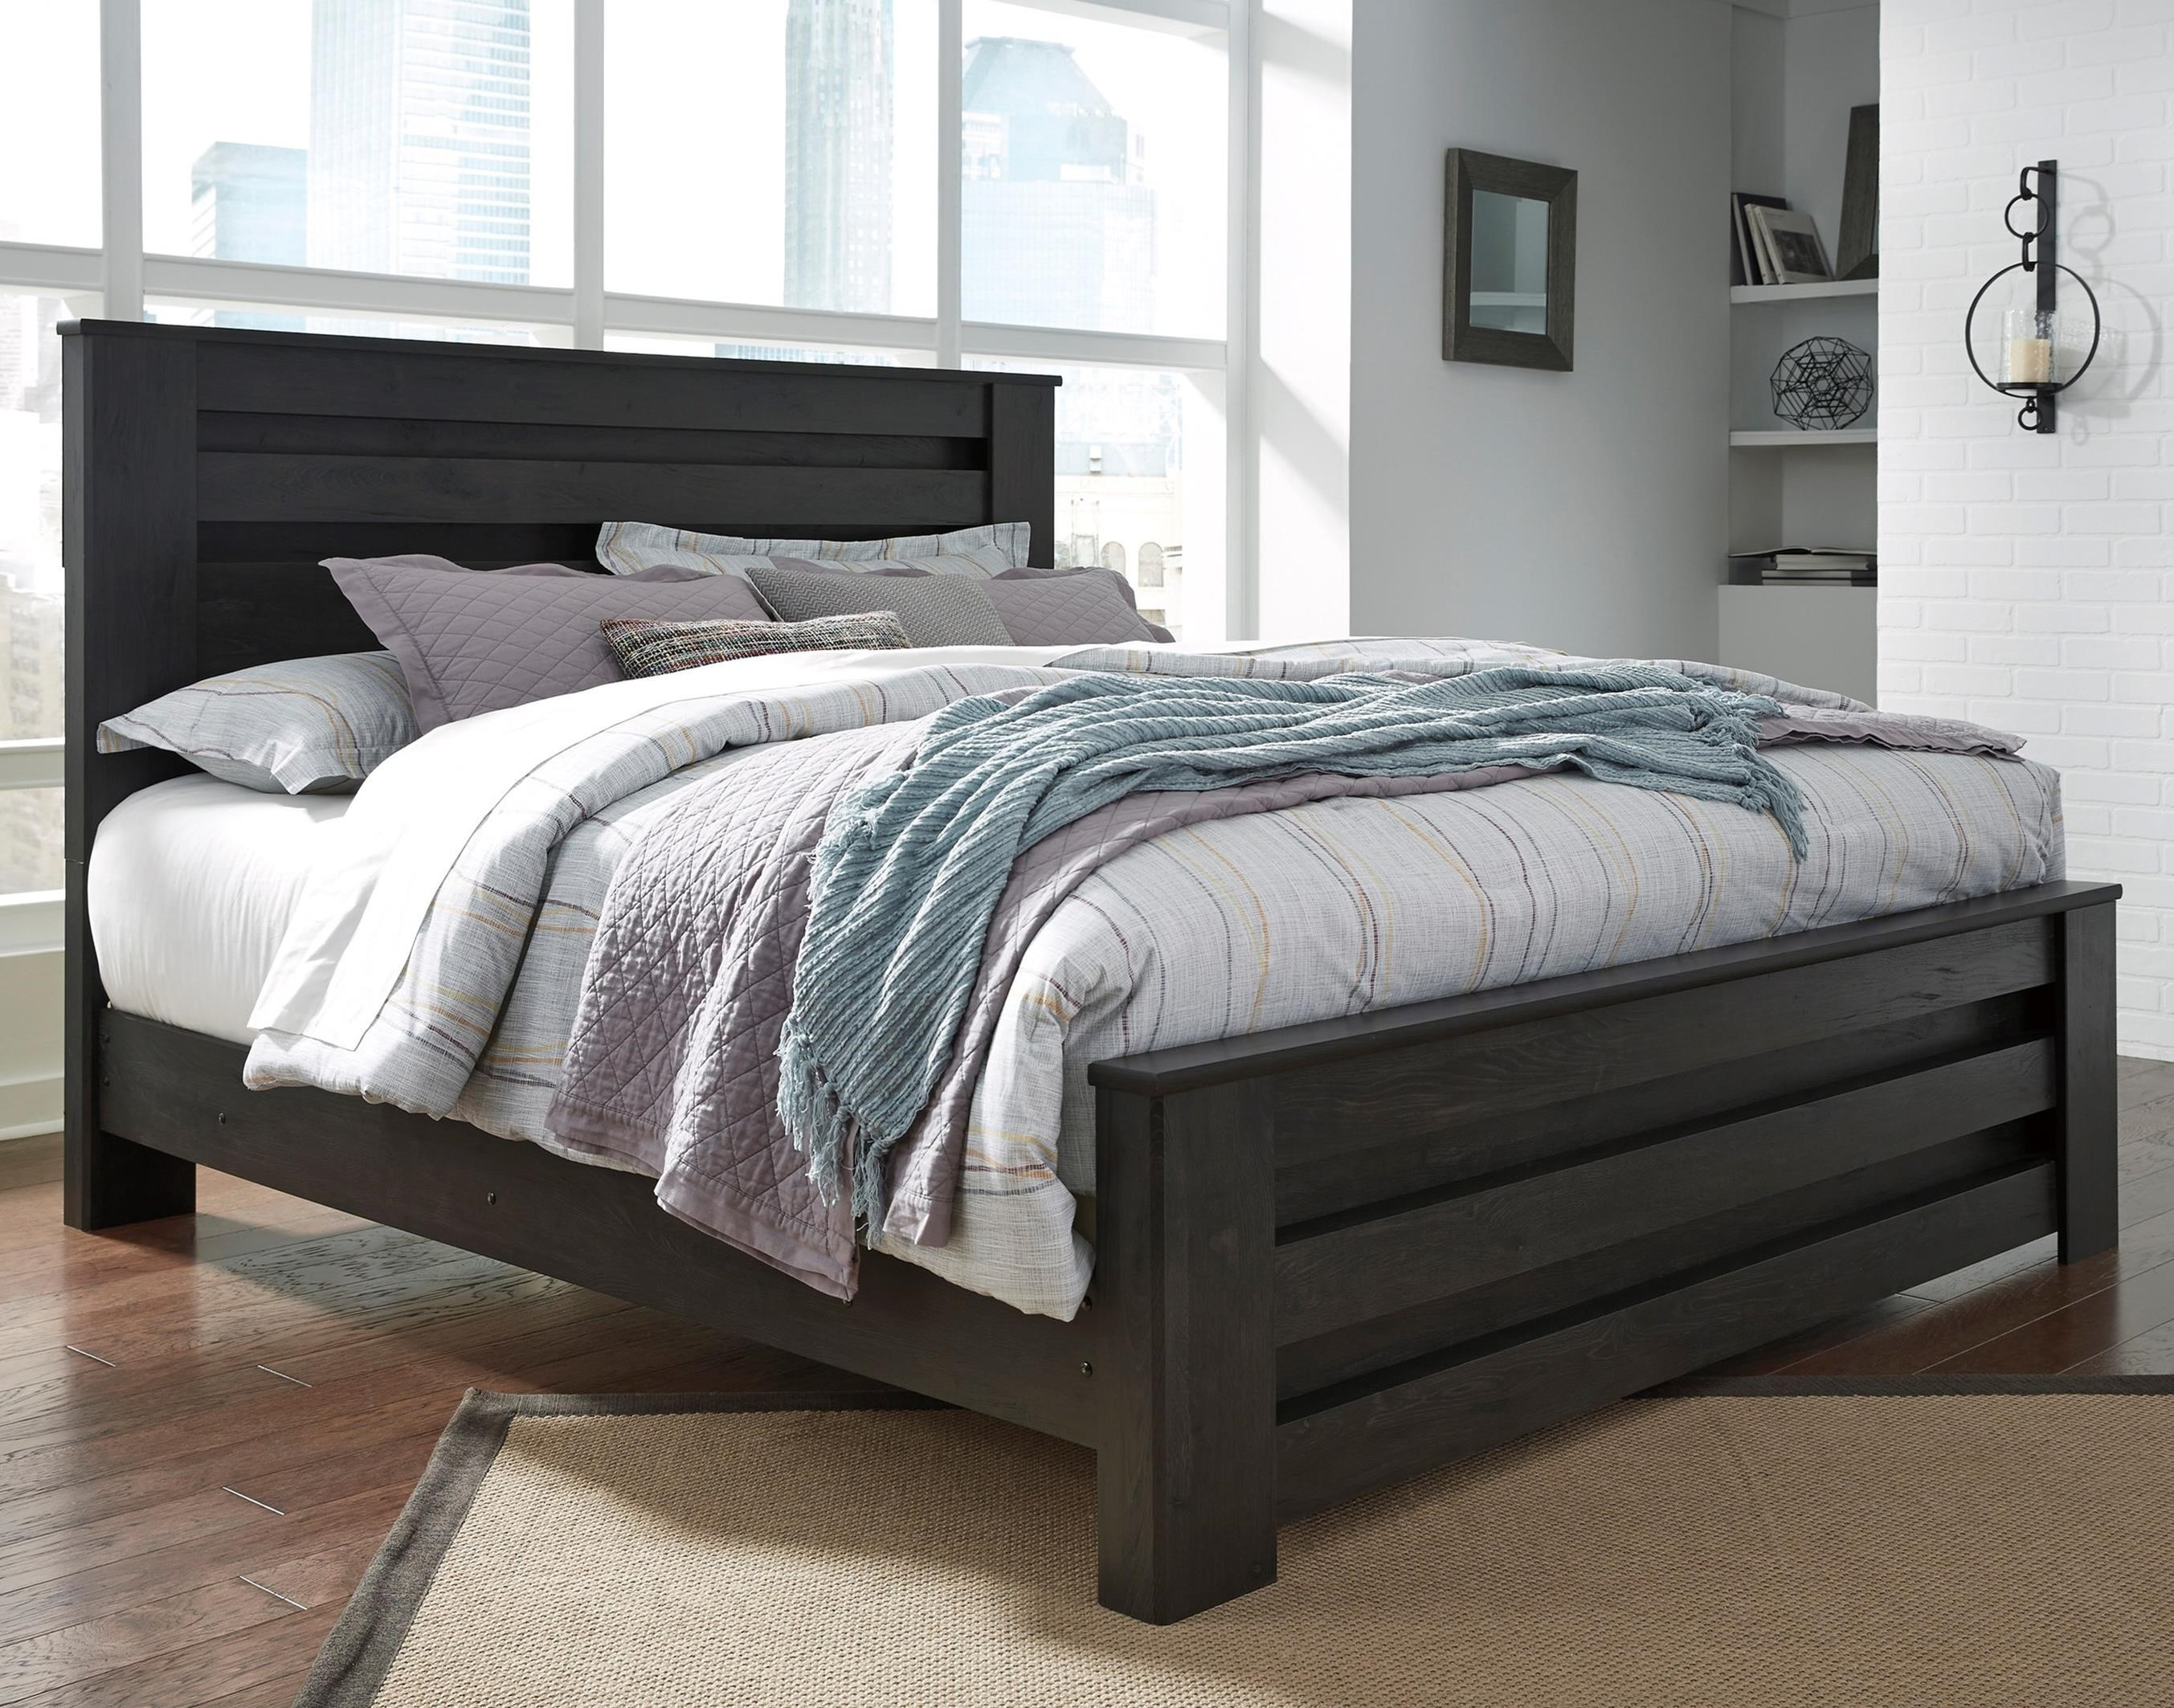 Brinxton King Panel Bed by Signature Design by Ashley at Northeast Factory Direct